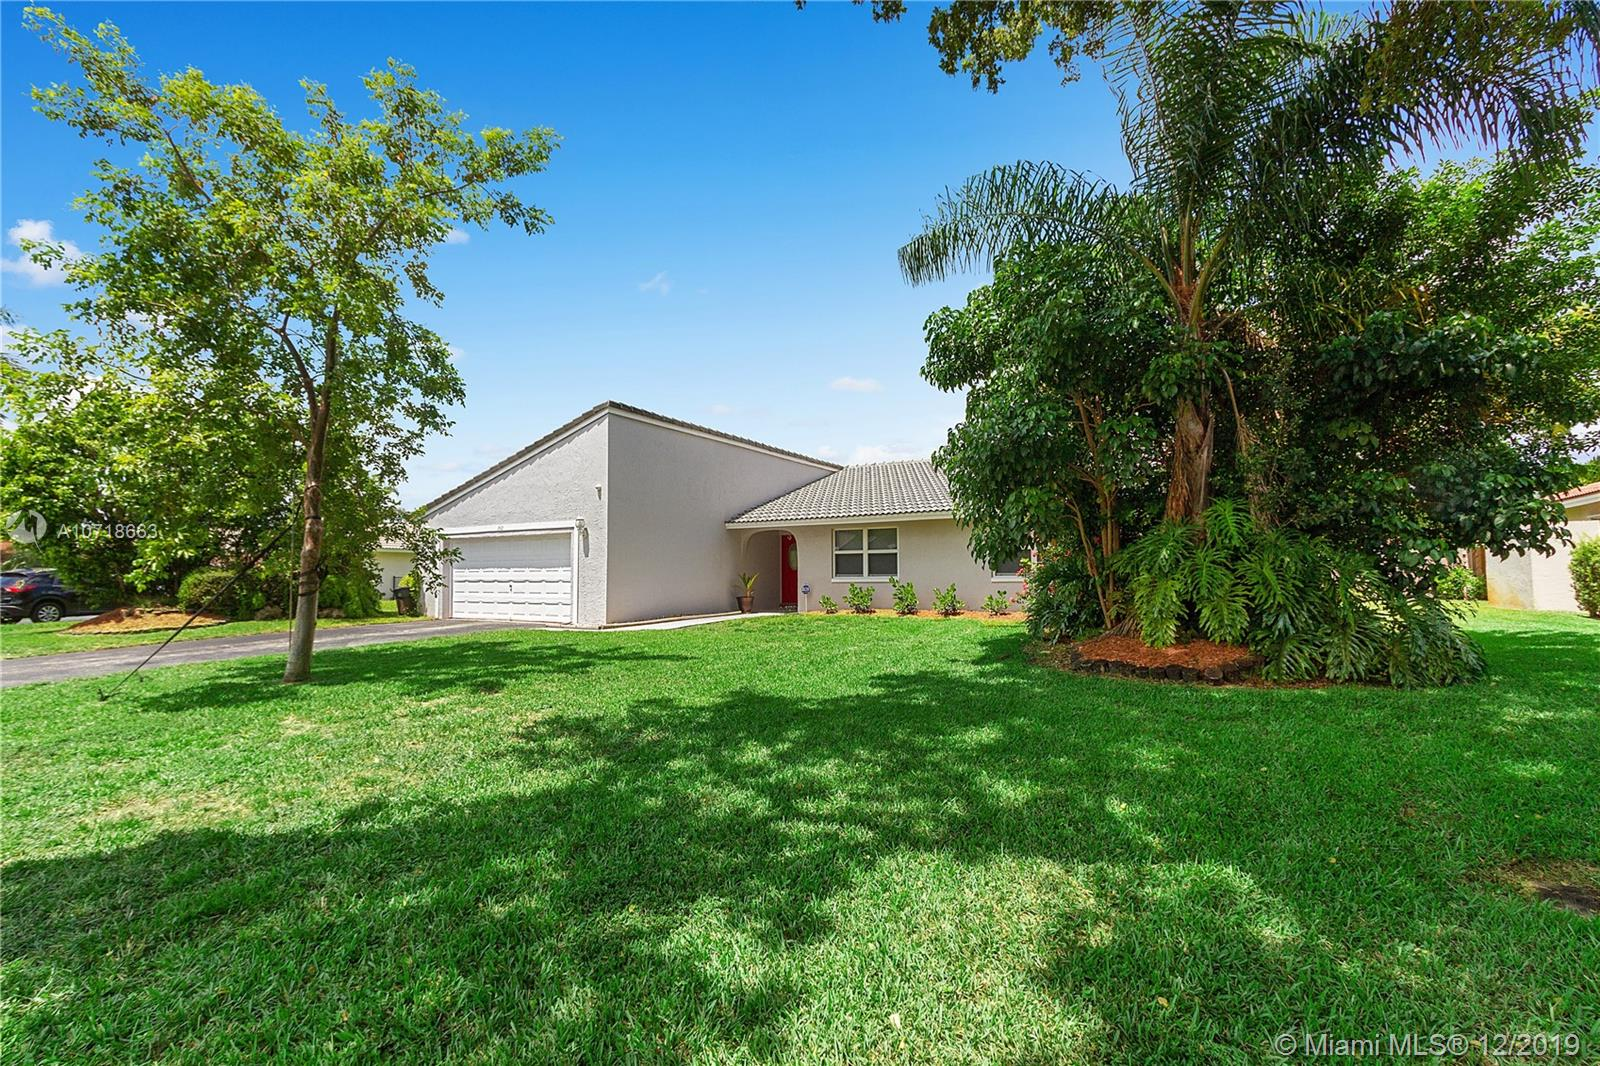 262 NW 92nd Ave, Coral Springs, FL 33071